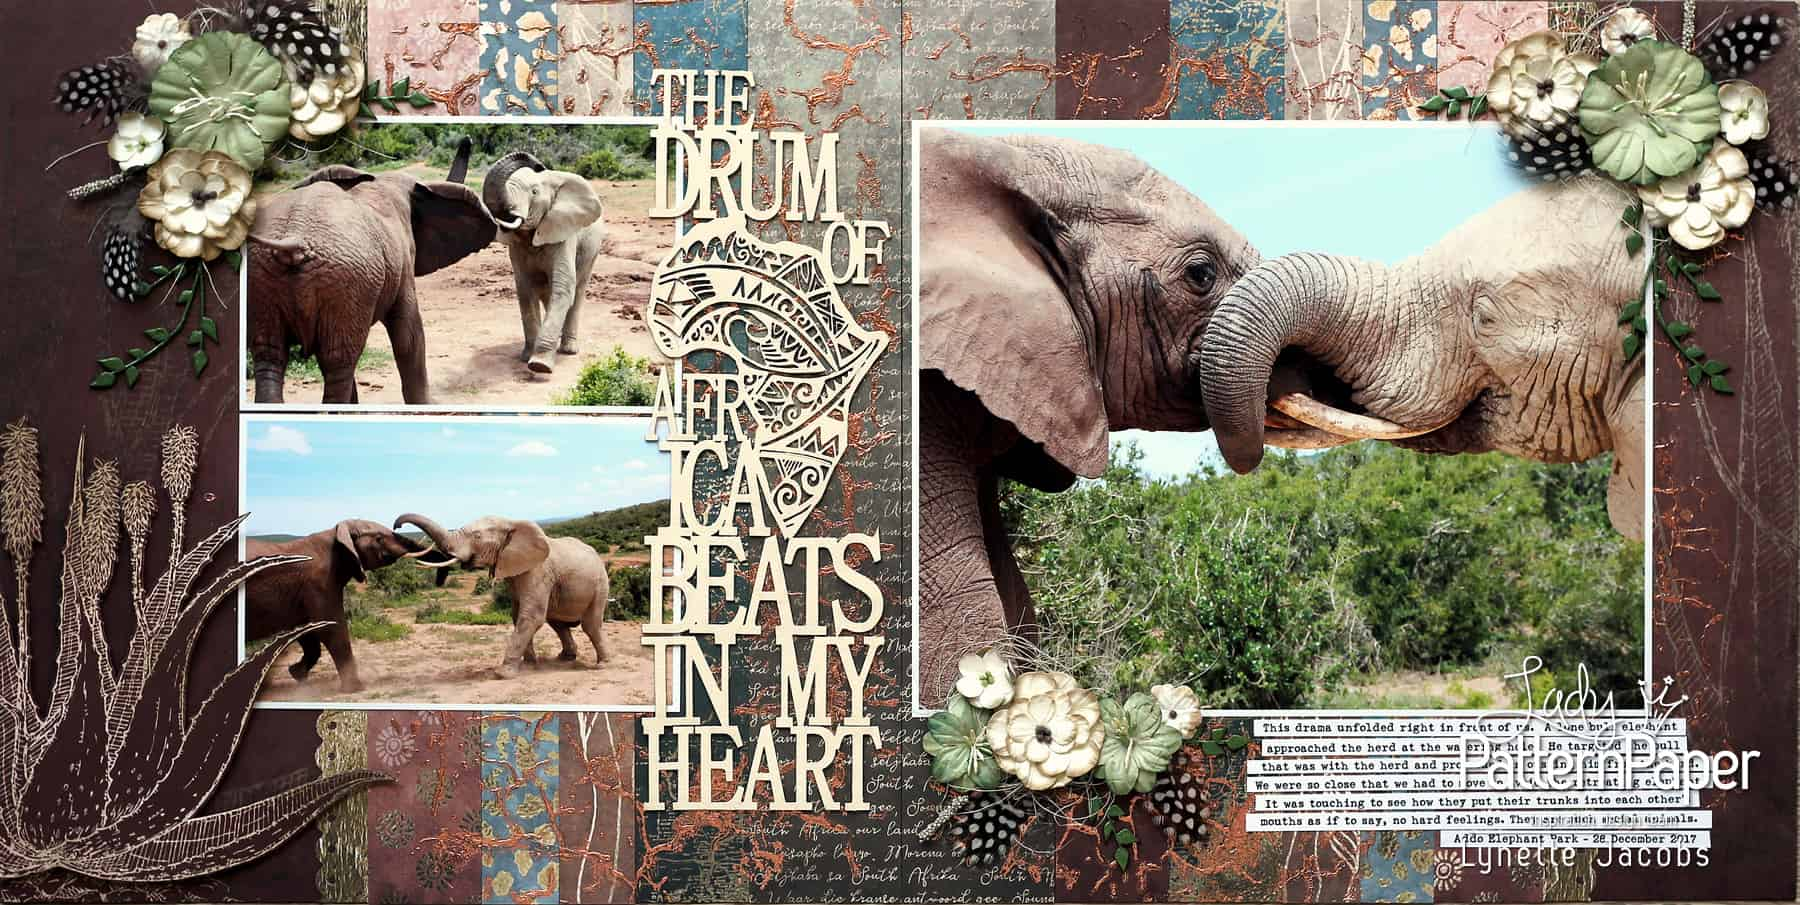 The Drum Of Africa Beats In My Heart